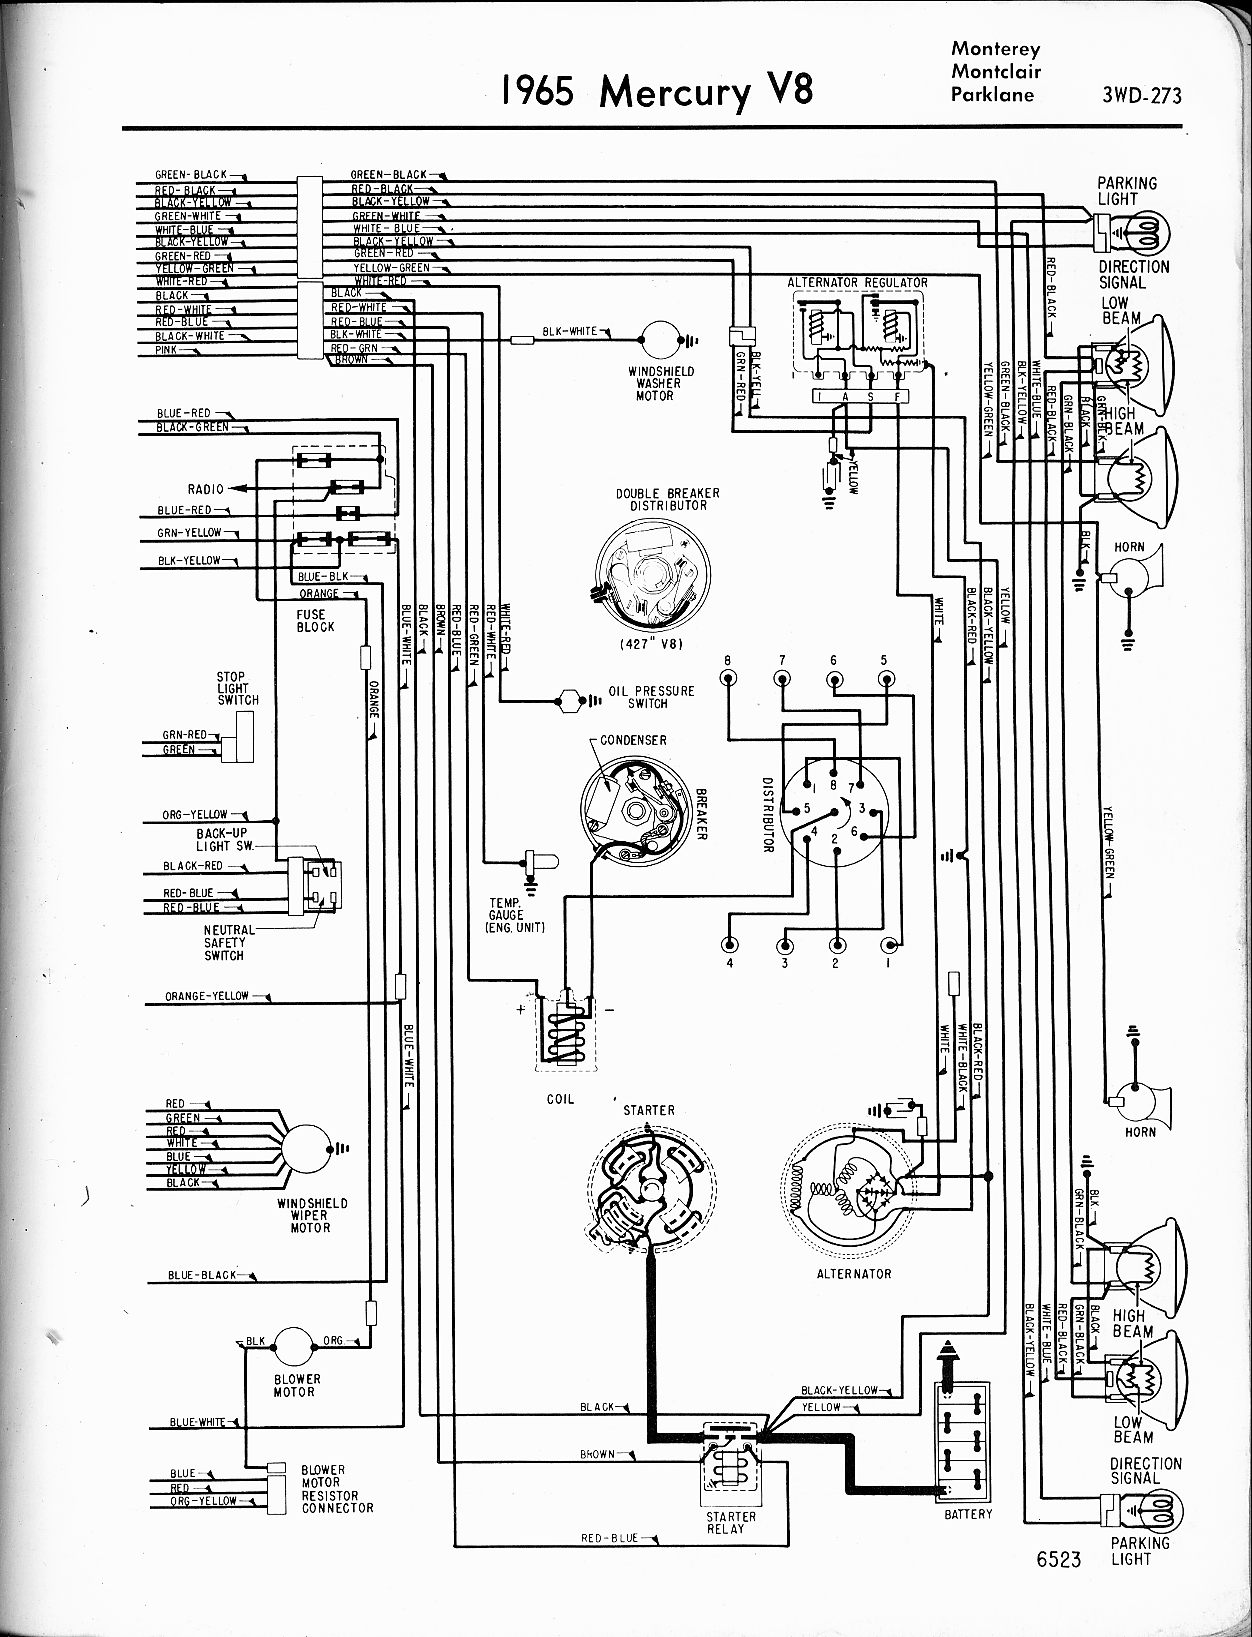 1991 Cougar Wiring Diagram Schematics Diagrams Mercury Capri Fuse Box 87 Residential Electrical Symbols U2022 Rh Bookmyad Co Specs V6 3 8 Engine